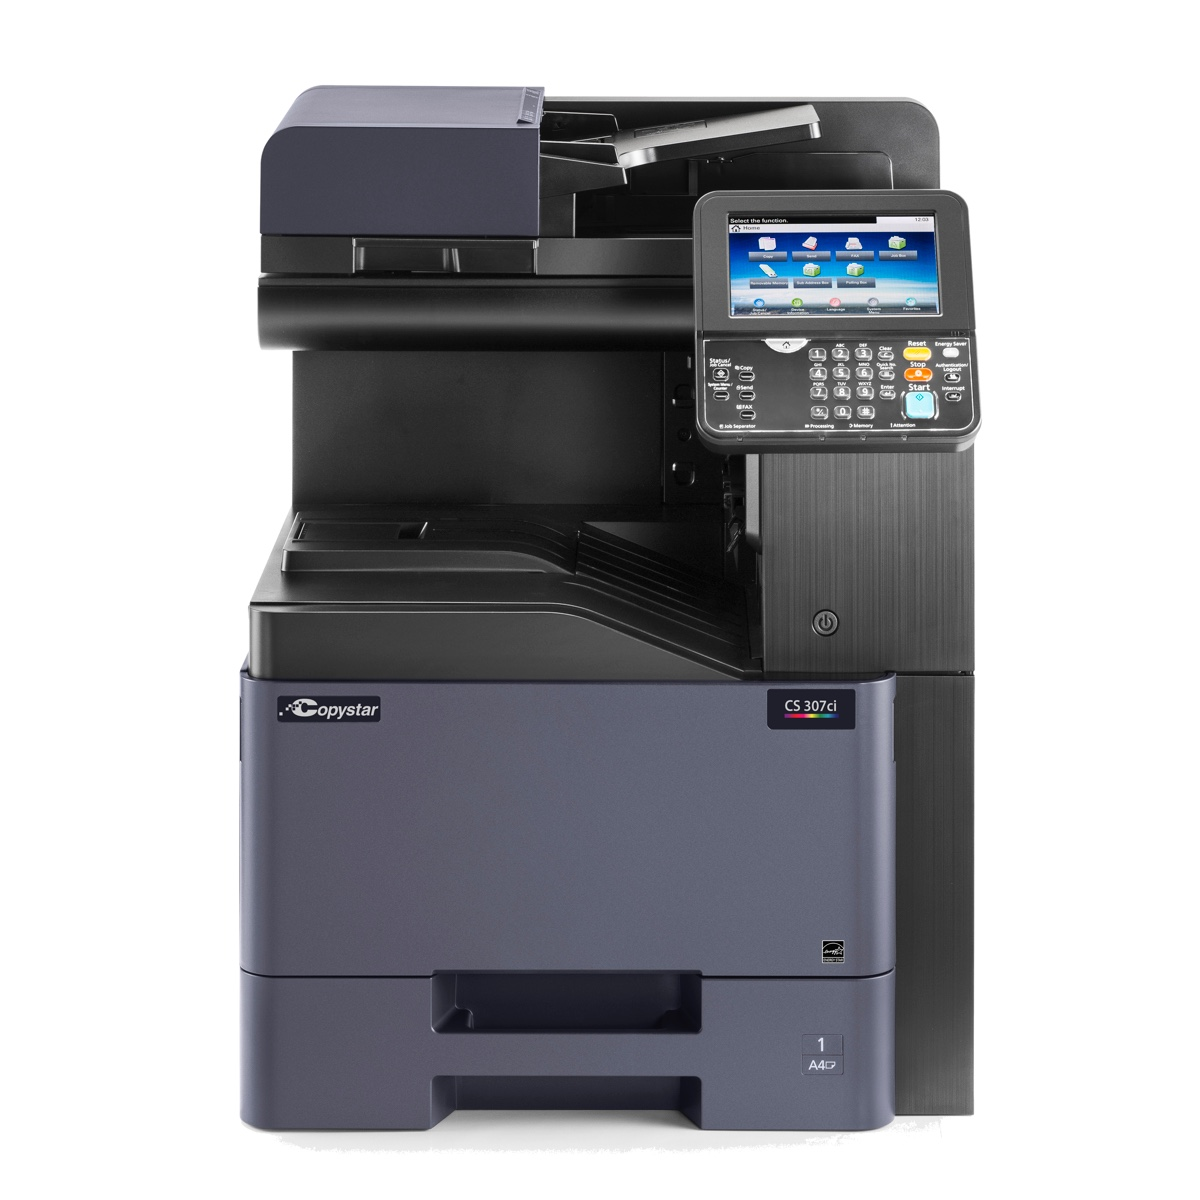 Copystar Copiers:  The Copystar CS 308ci Copier